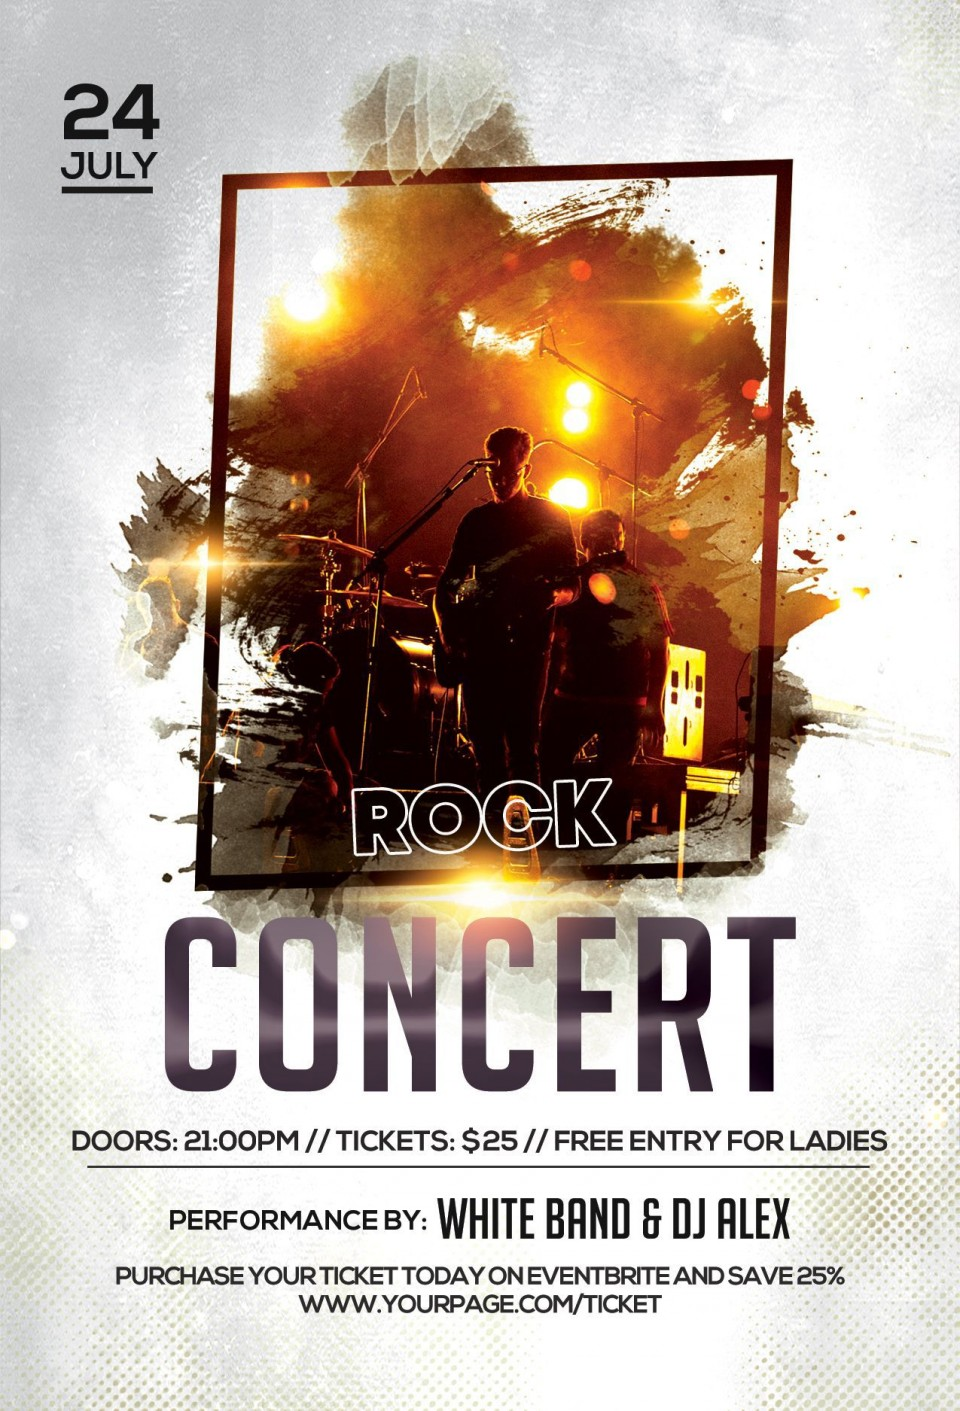 004 Amazing Free Concert Poster Template Highest Quality  Rock Psd Christma Photoshop960